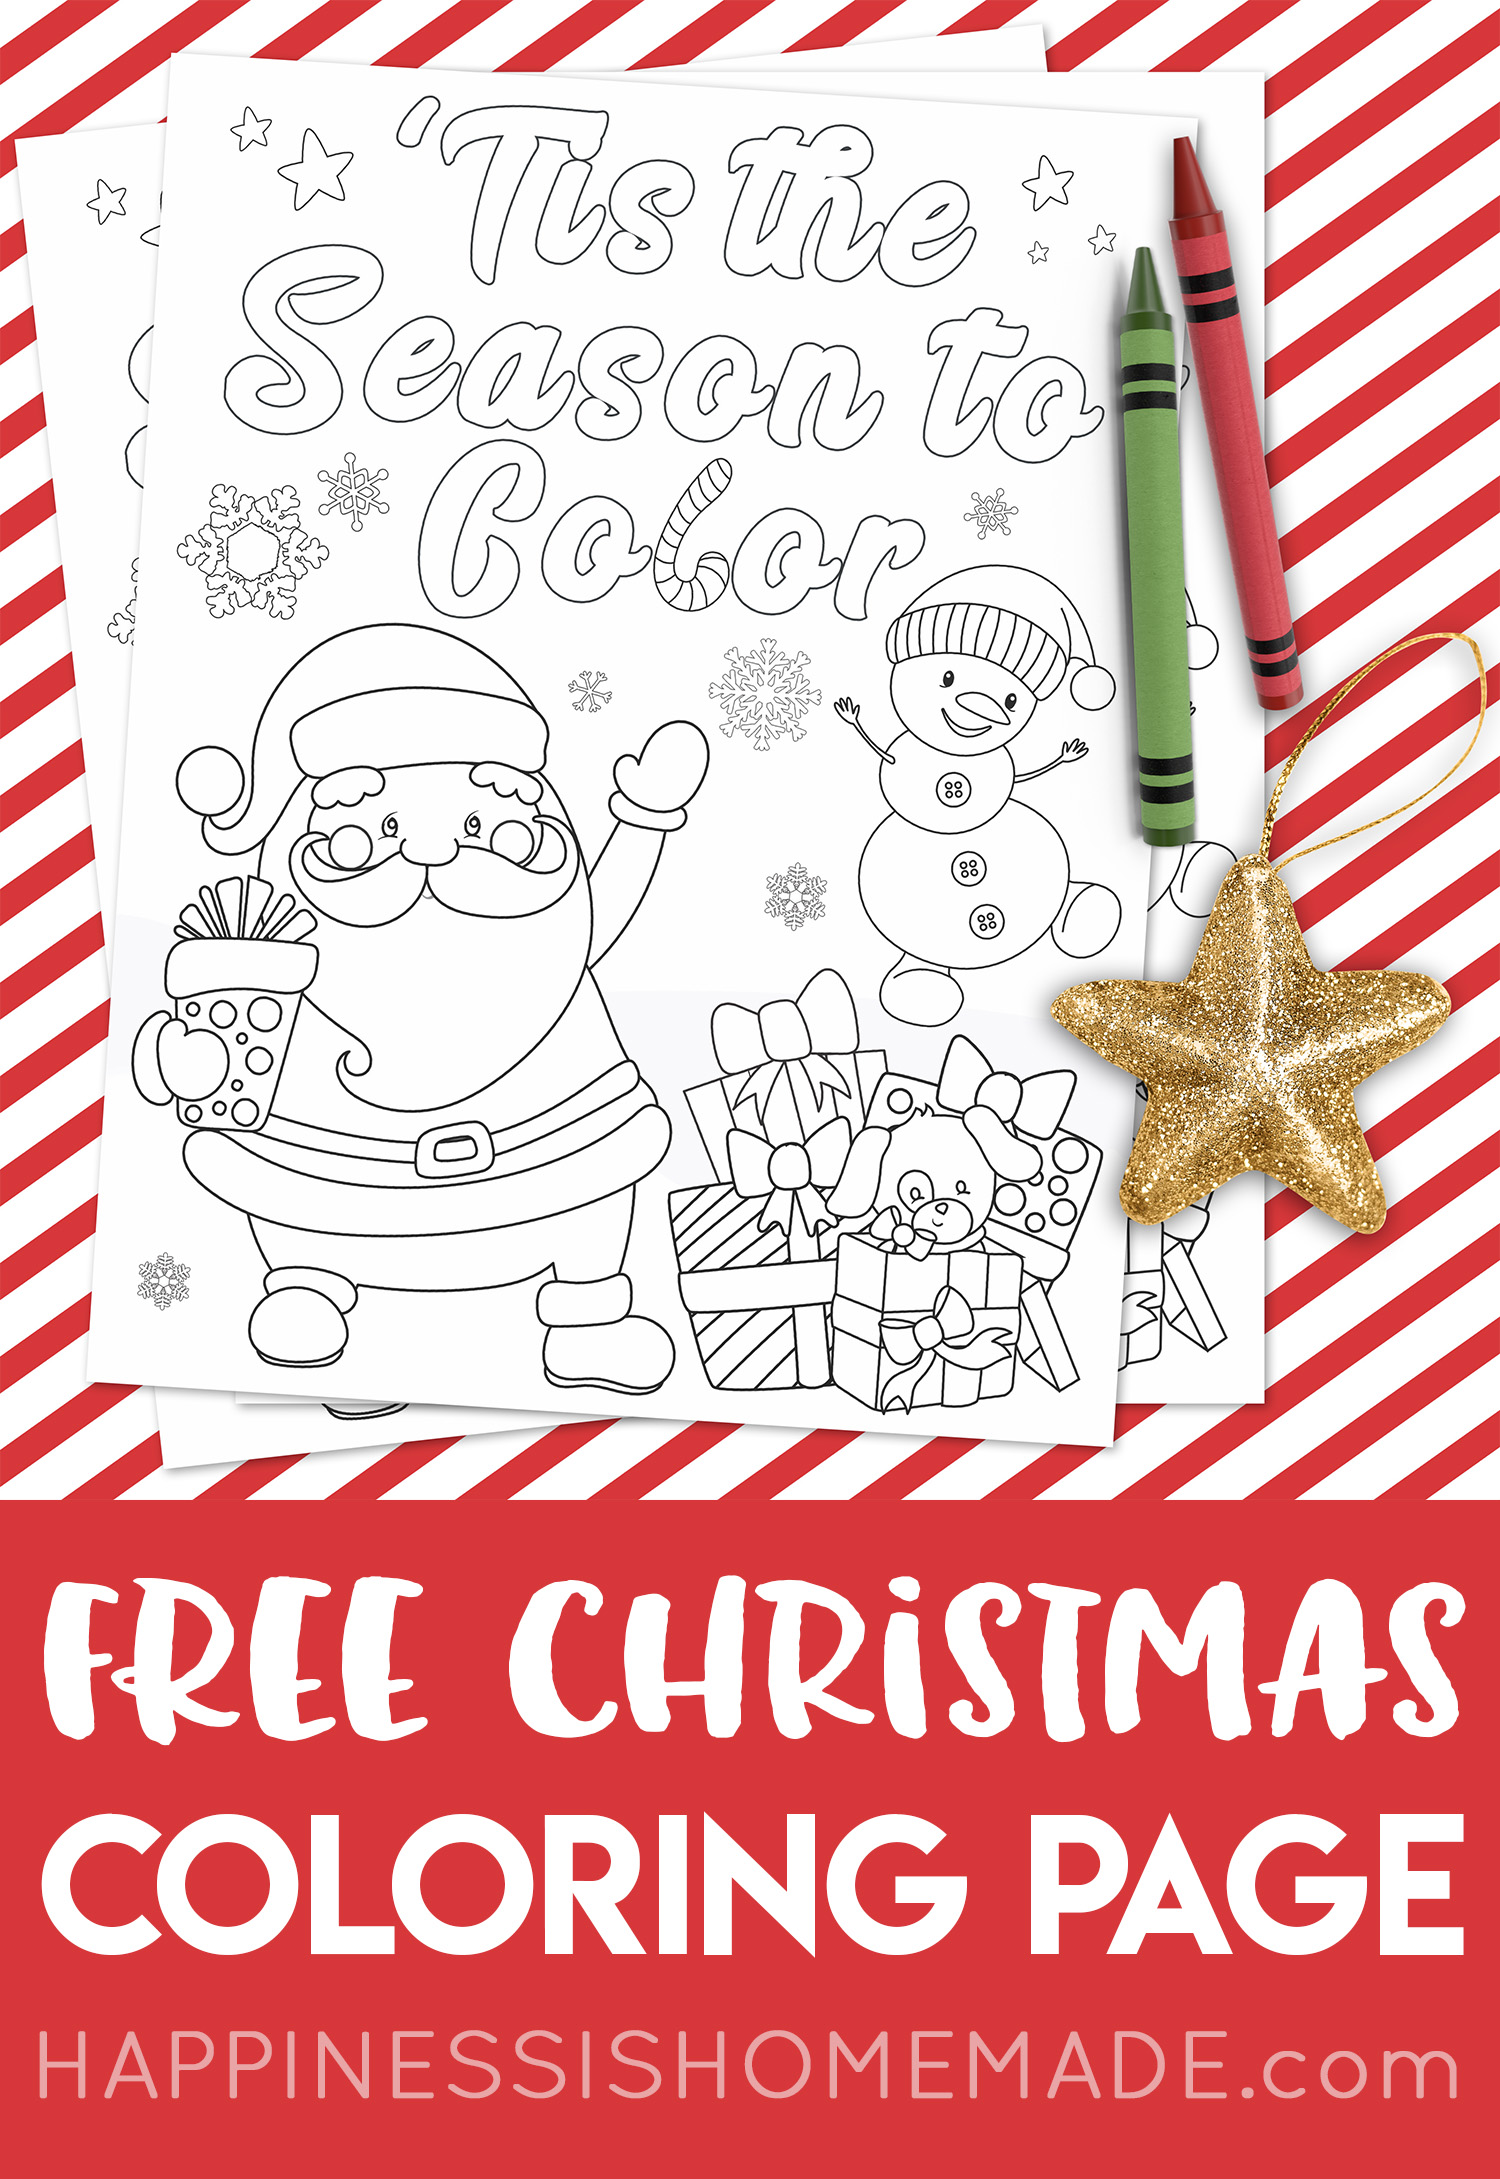 FREE Christmas Coloring Page Tis The Season To Color